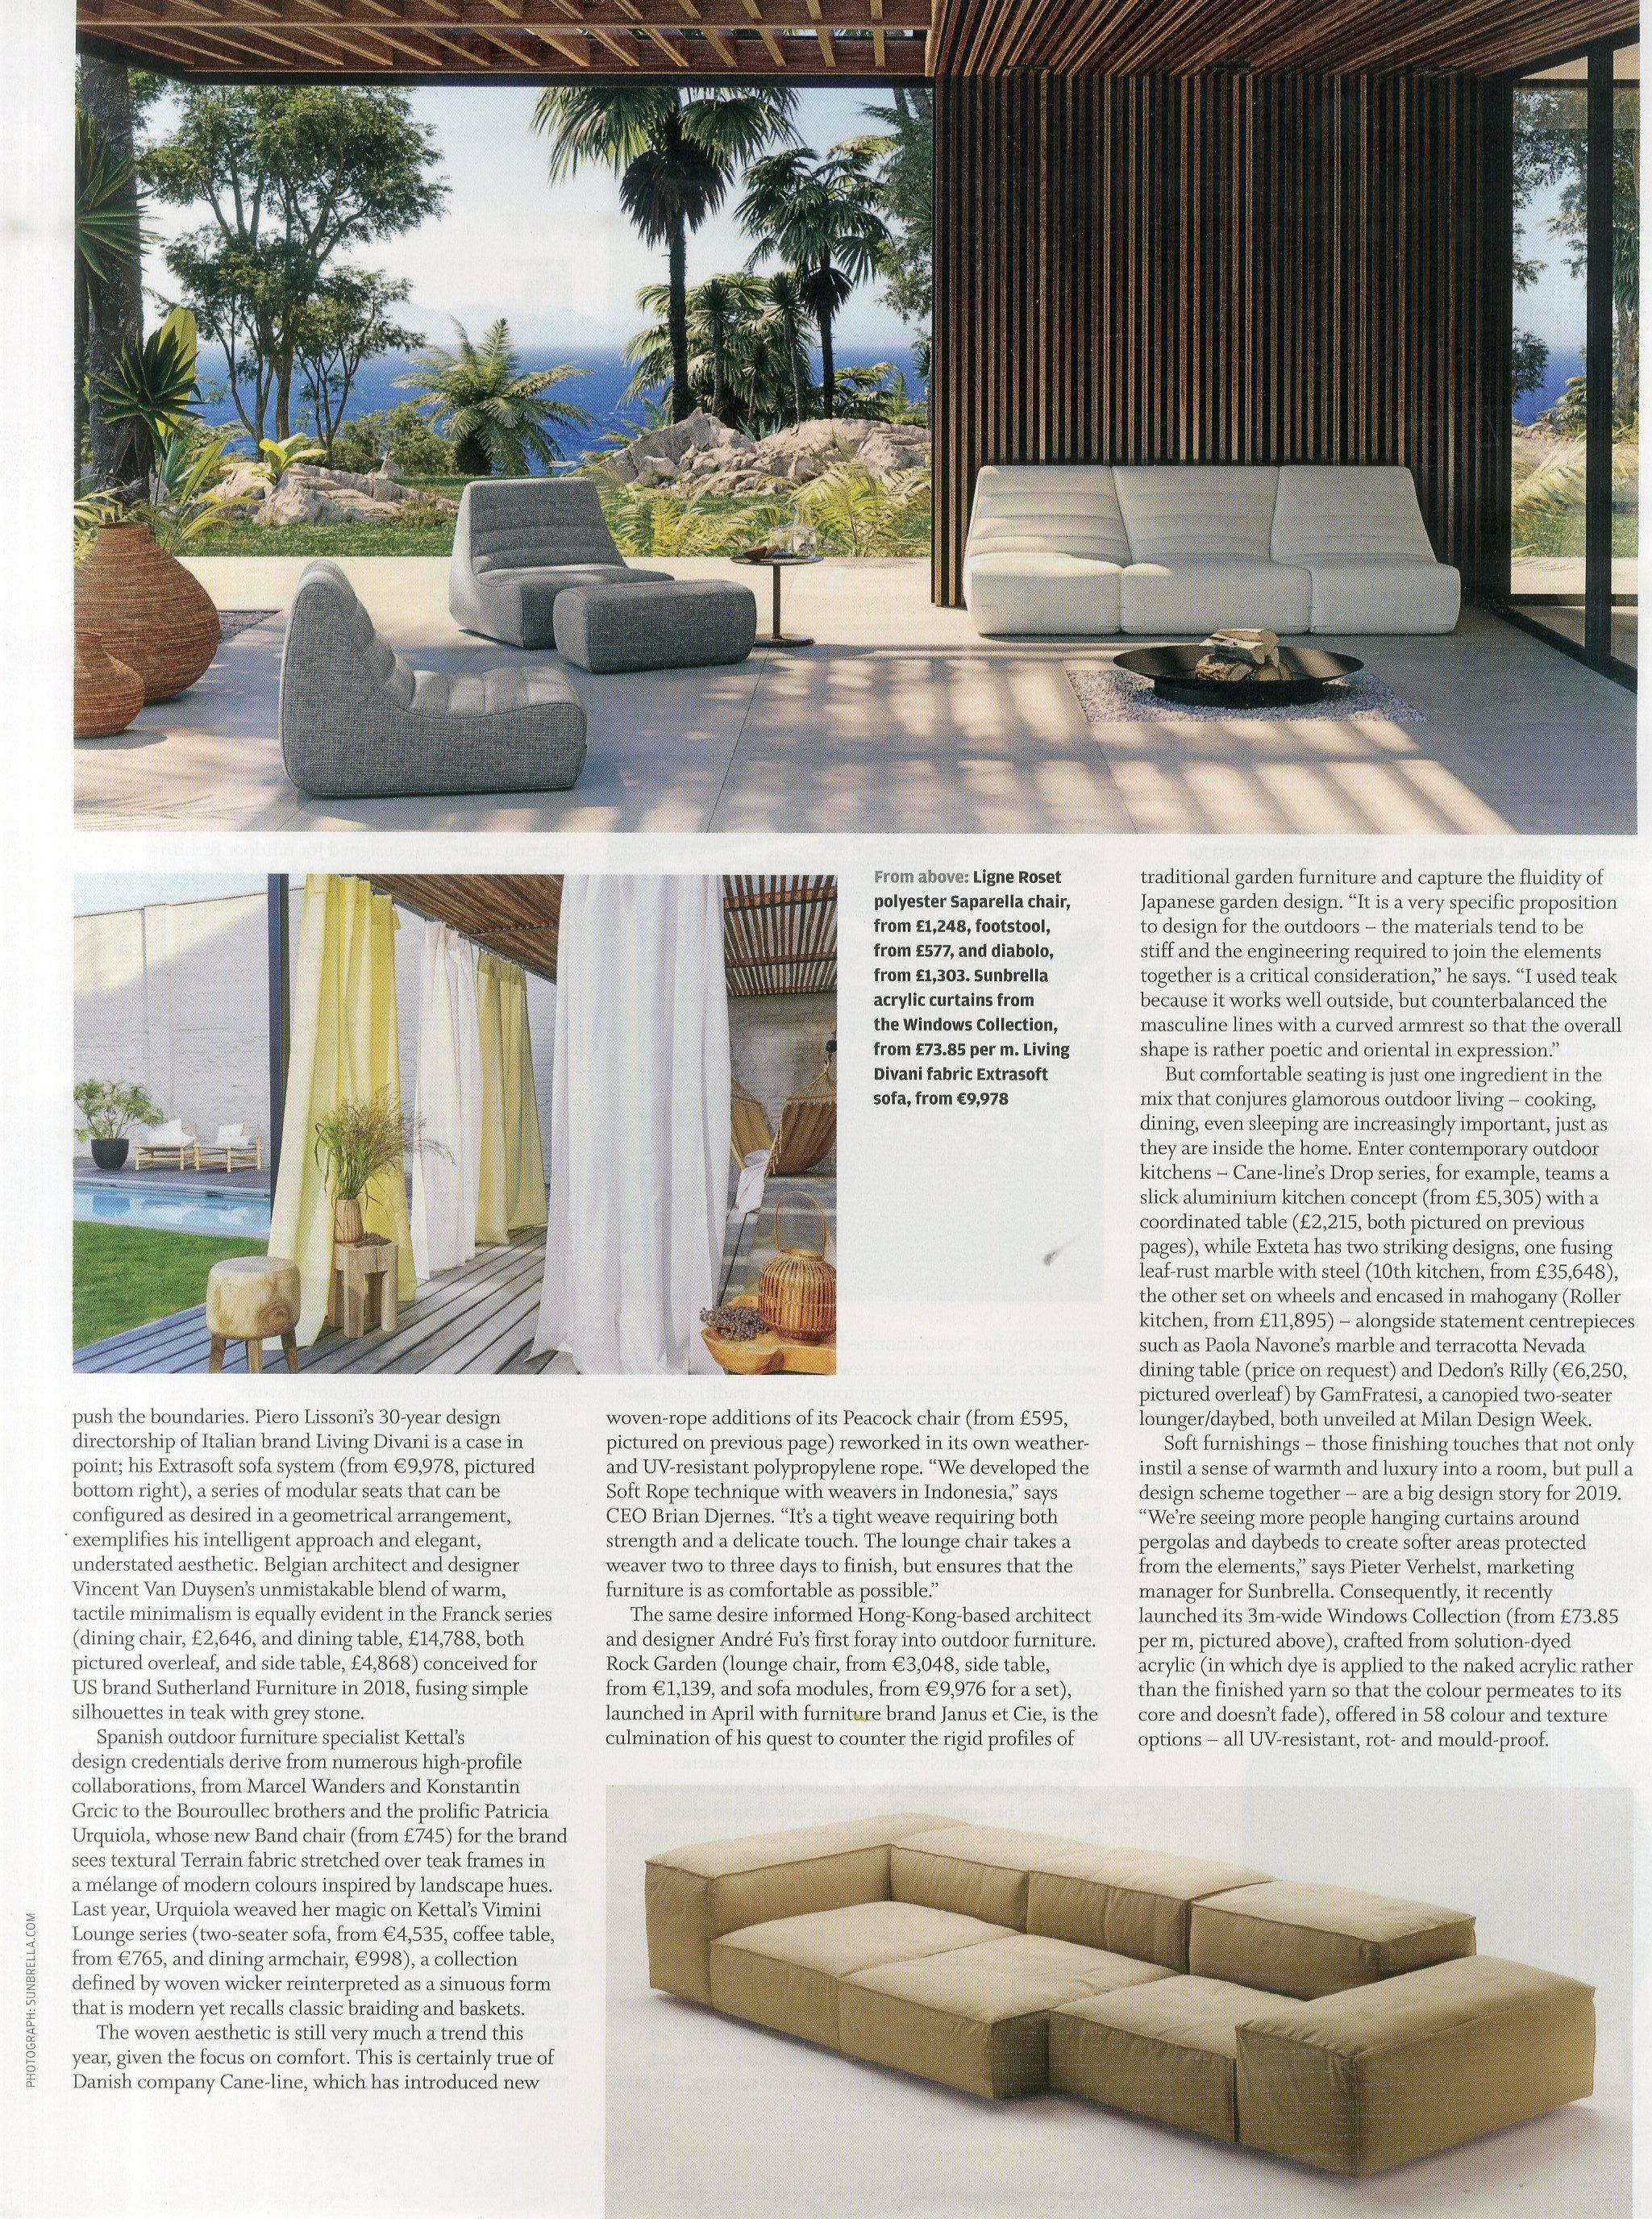 Take it outside with Ligne Roset's reissued 1960s classic Saparella in FT How to Spend It